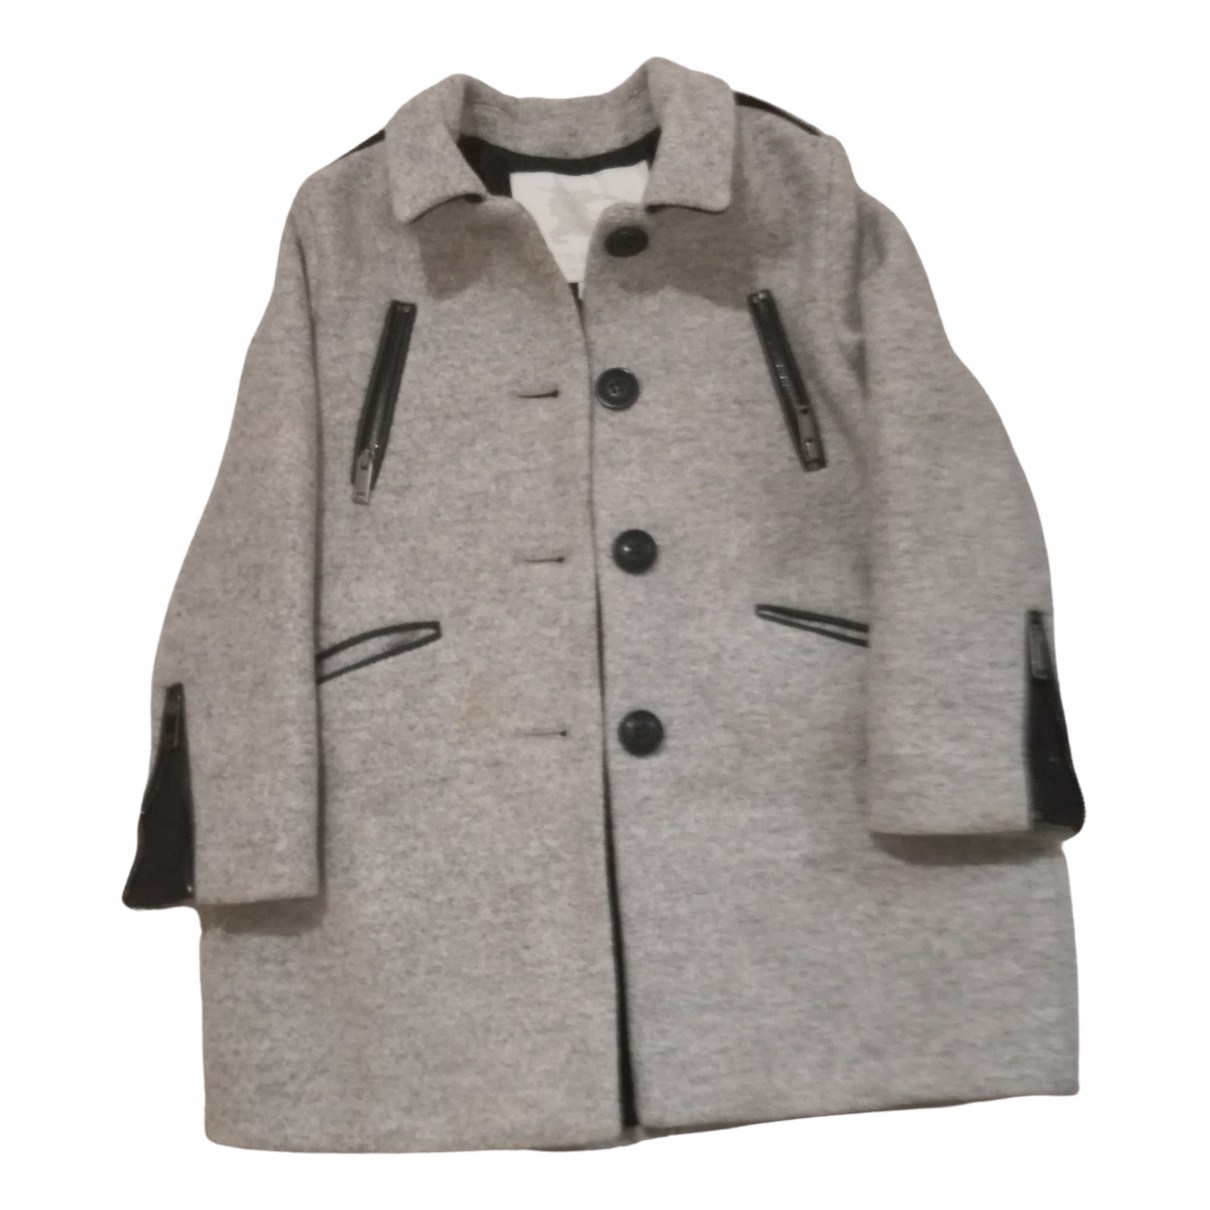 Burberry \N Grey Wool jacket & coat for Kids 5 years - until 42.5 inches UK